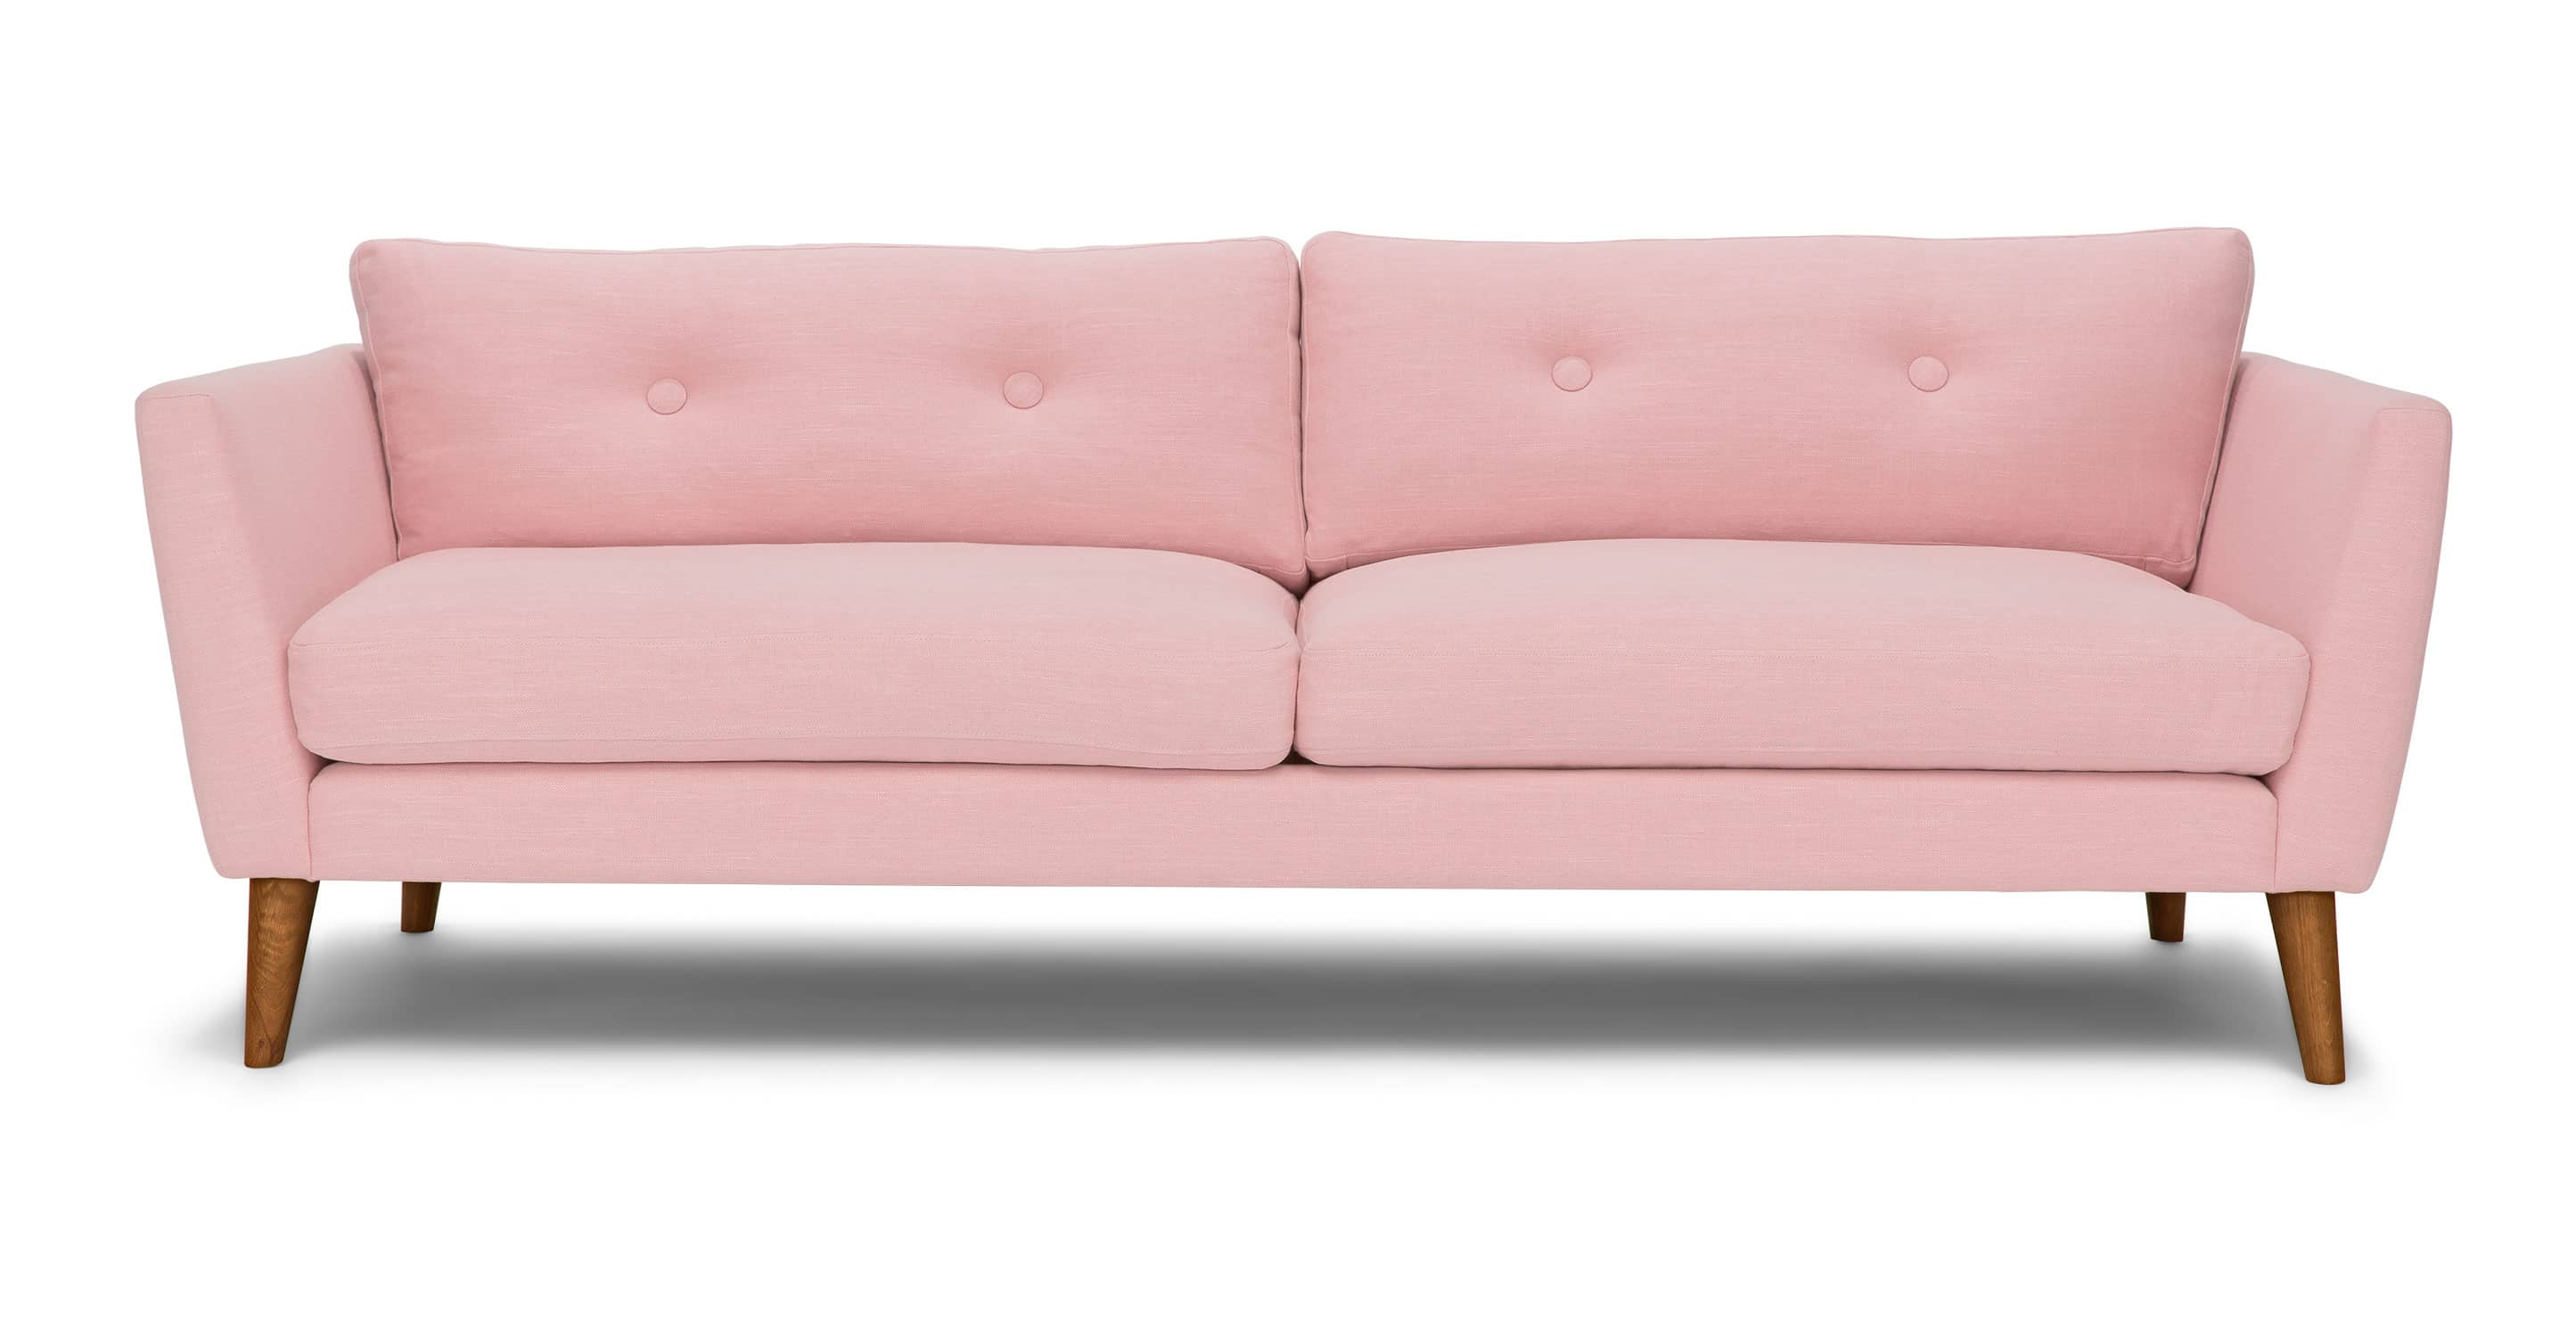 A Review Of 16 Of Article S Most Popular Sofas Apartment Therapy